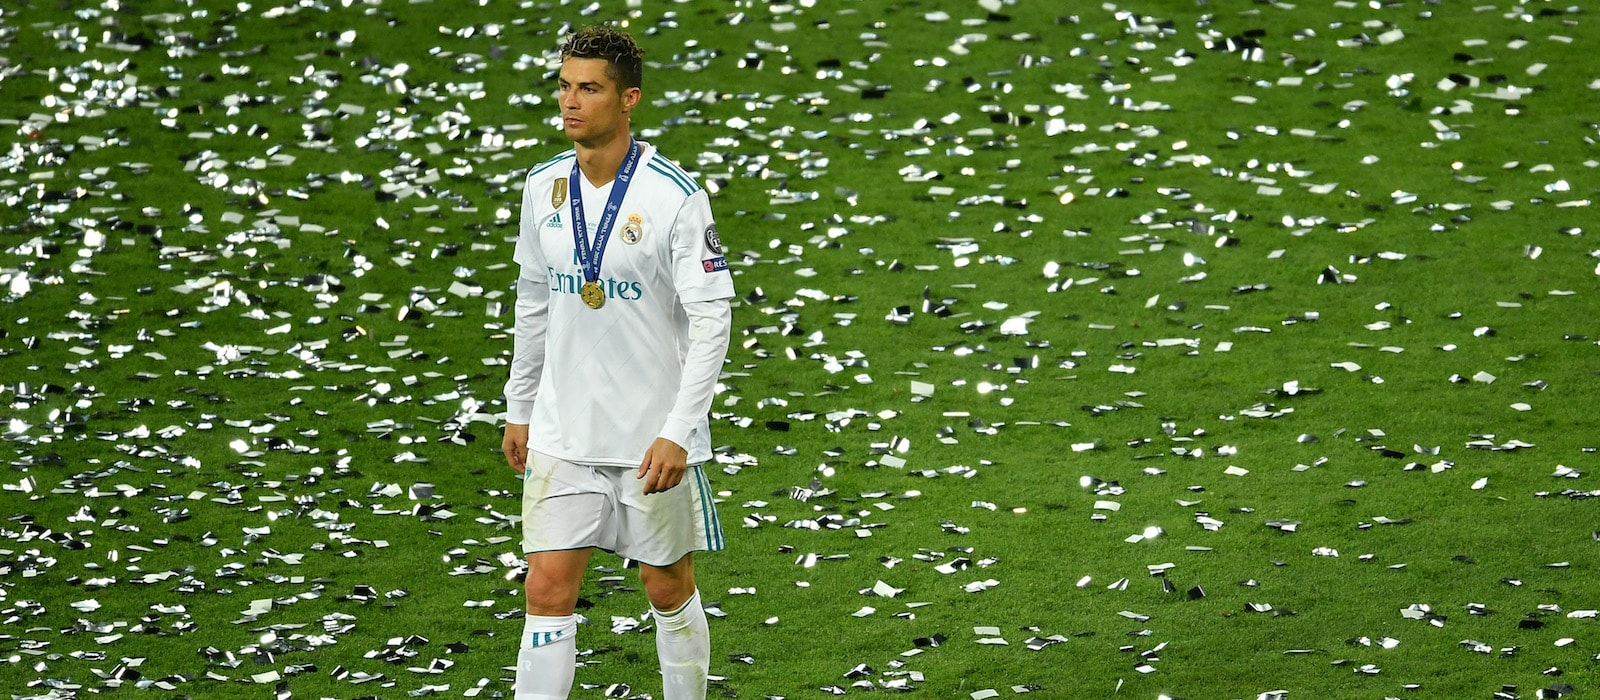 Ryan Giggs: Cristiano Ronaldo is obsessed with being better than Lionel Messi